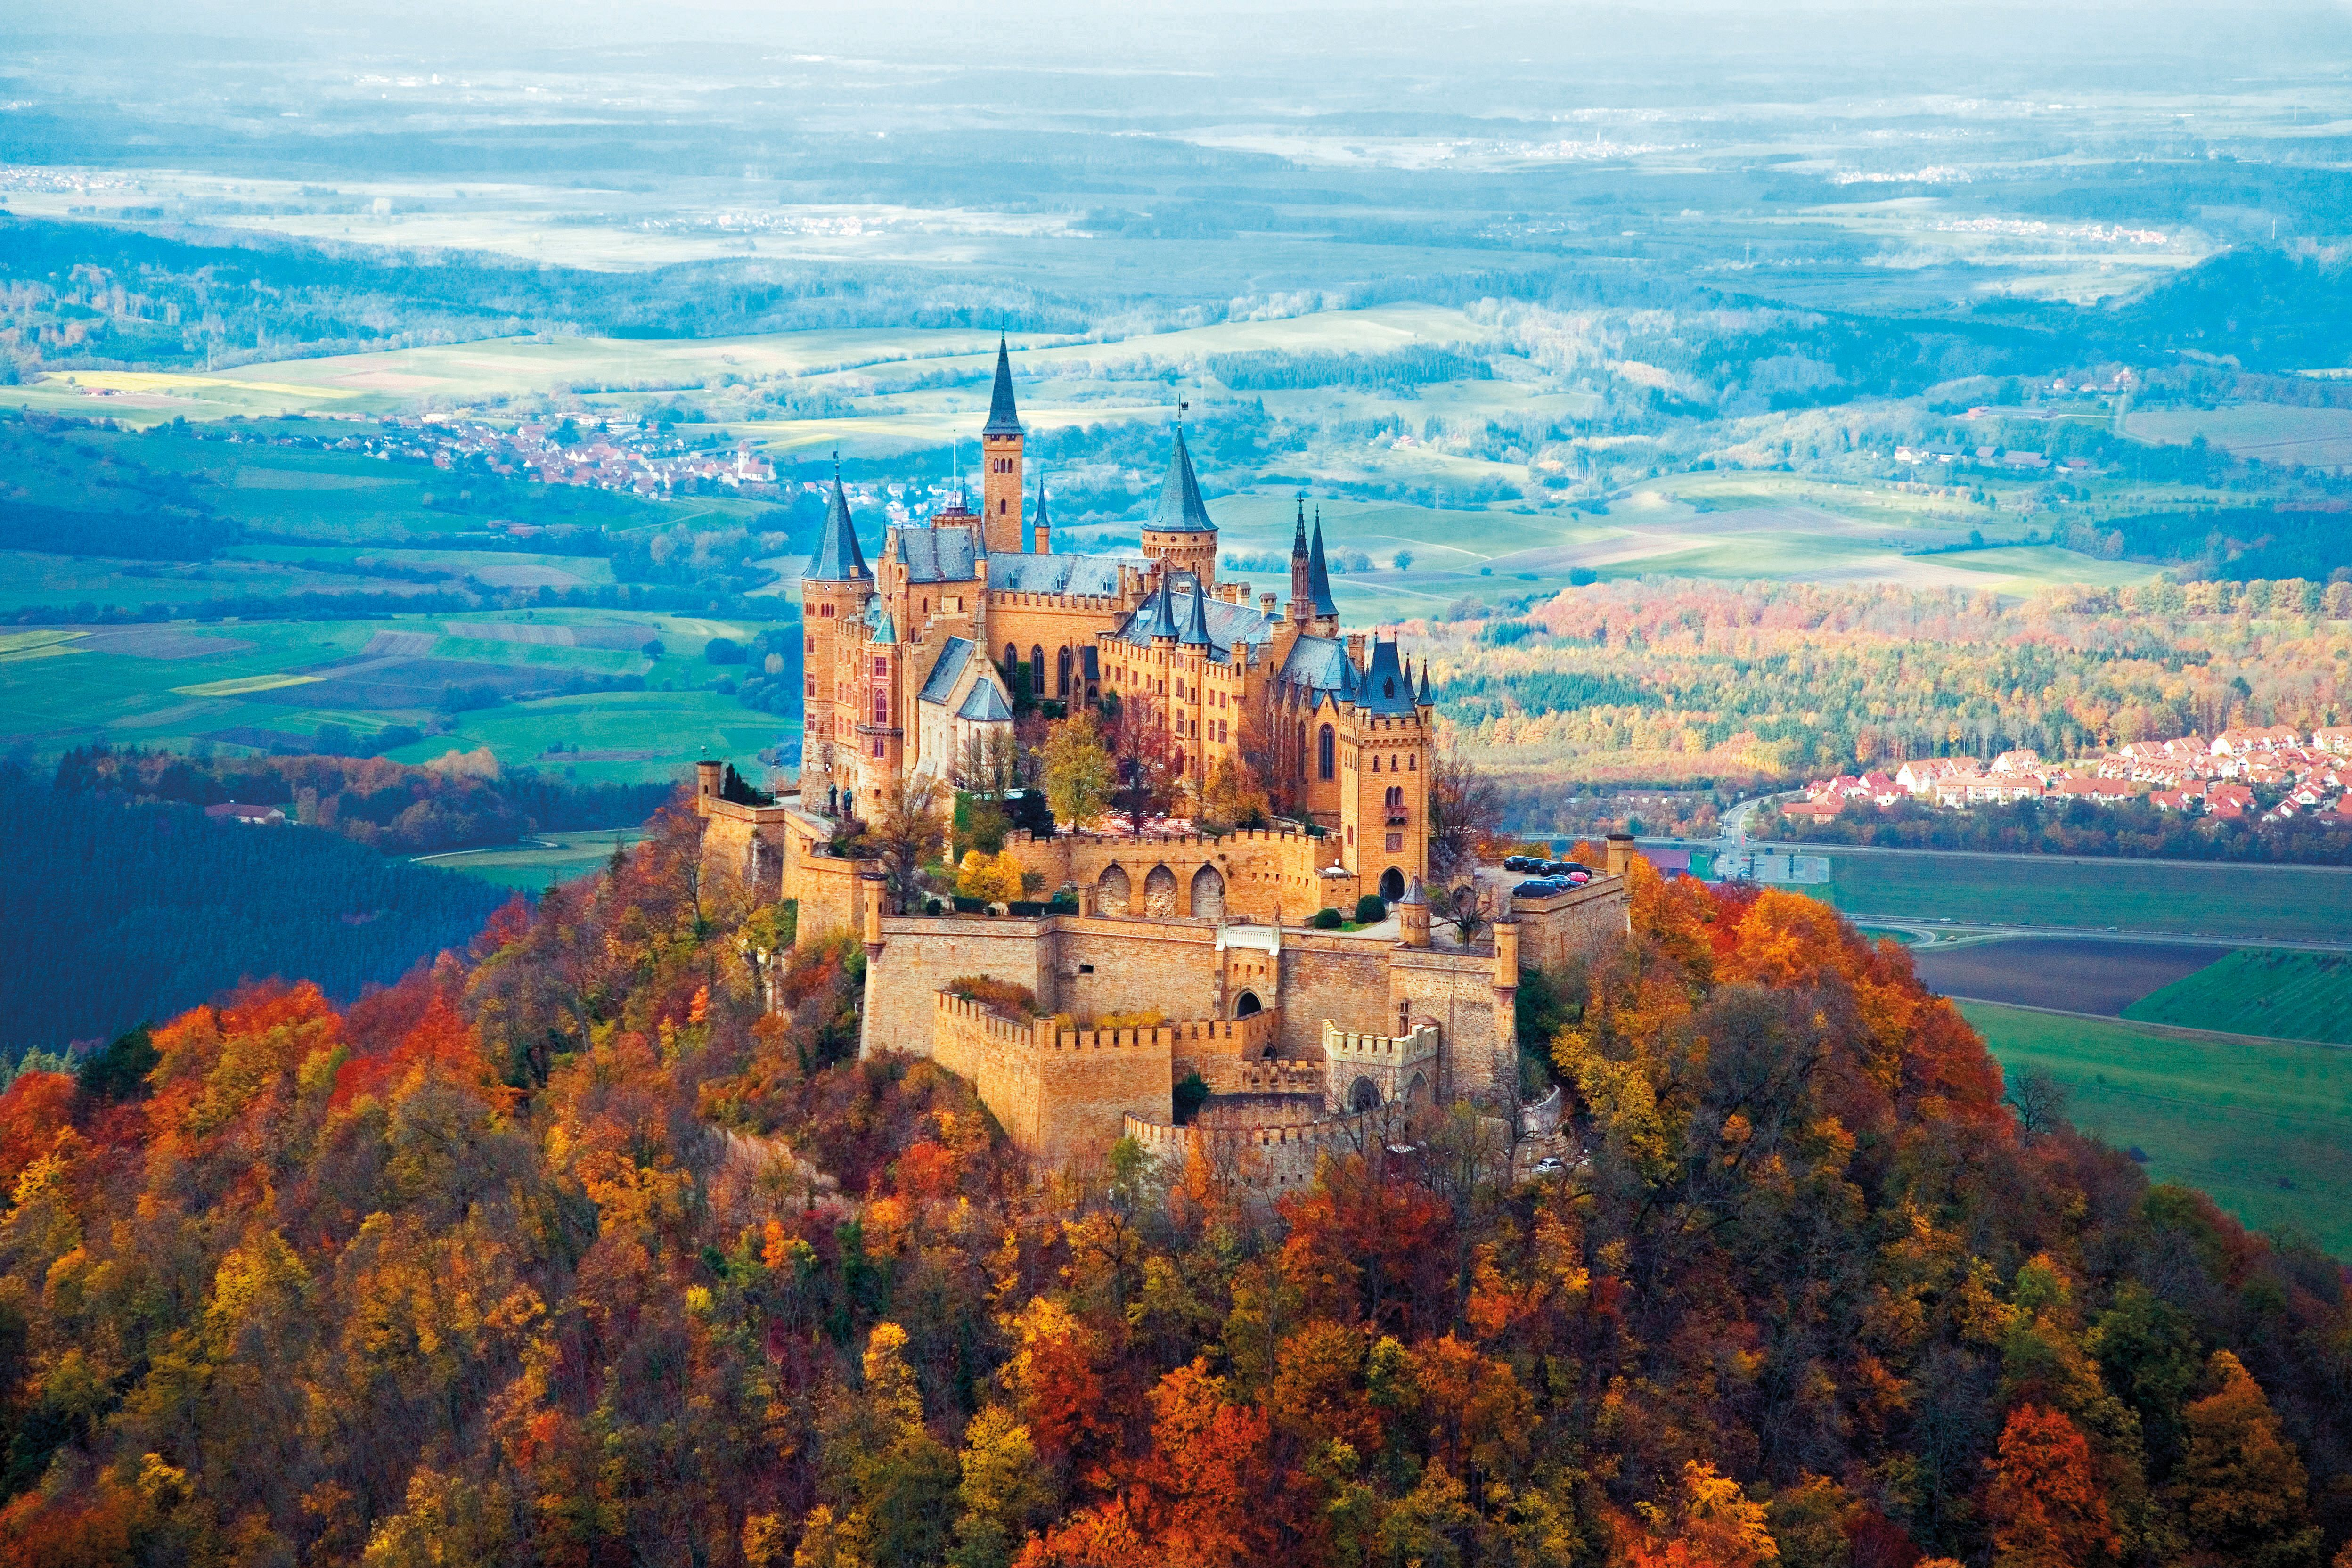 Hohenzollern Castle in the Fall 4k Ultra HD Wallpaper Background 4992x3328